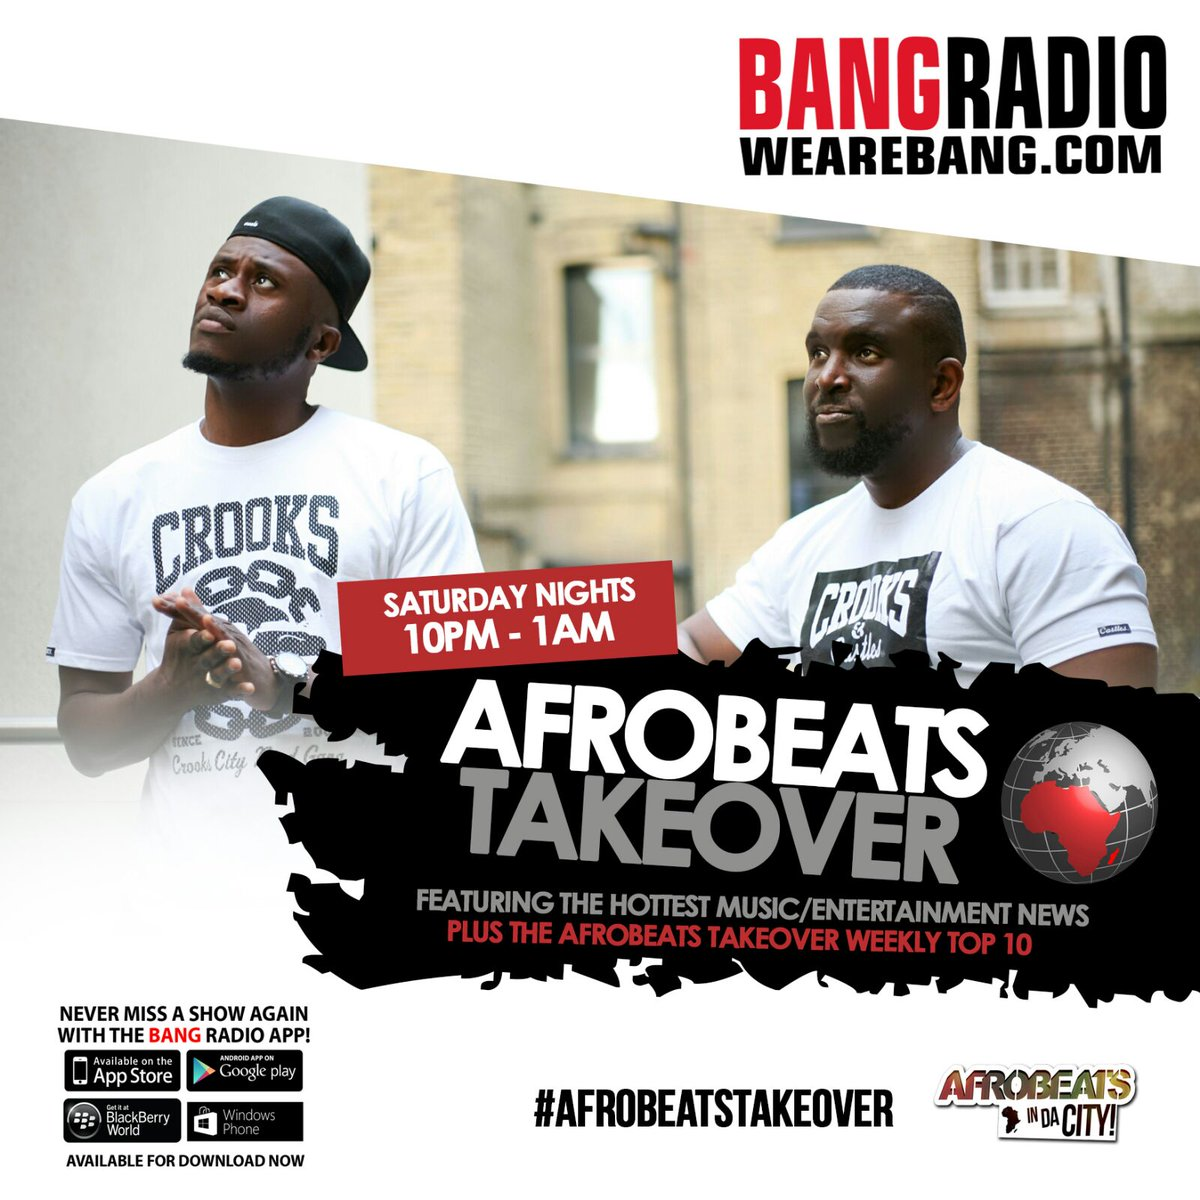 Looking forward to new show tonight on @WeAreBANGRADIO w/ @dboyCityLove and Selector Maestro #AfrobeatsTakeover https://t.co/S4eonauWnZ